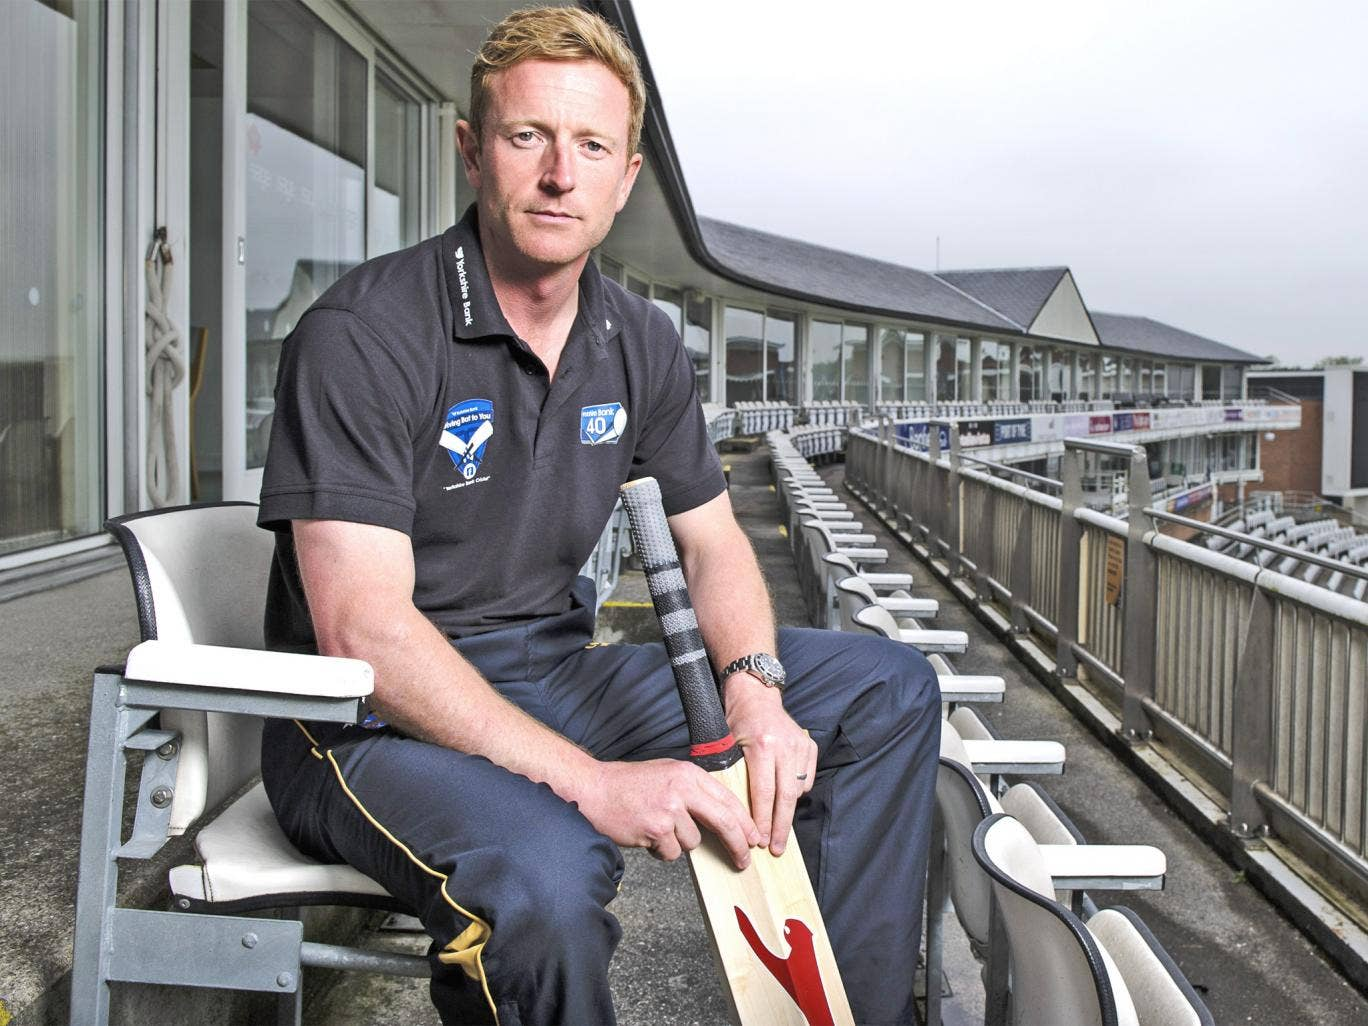 Collingwood: 'I was very emotional on my last ashes day. I was wearing my glasses because I was in tears'